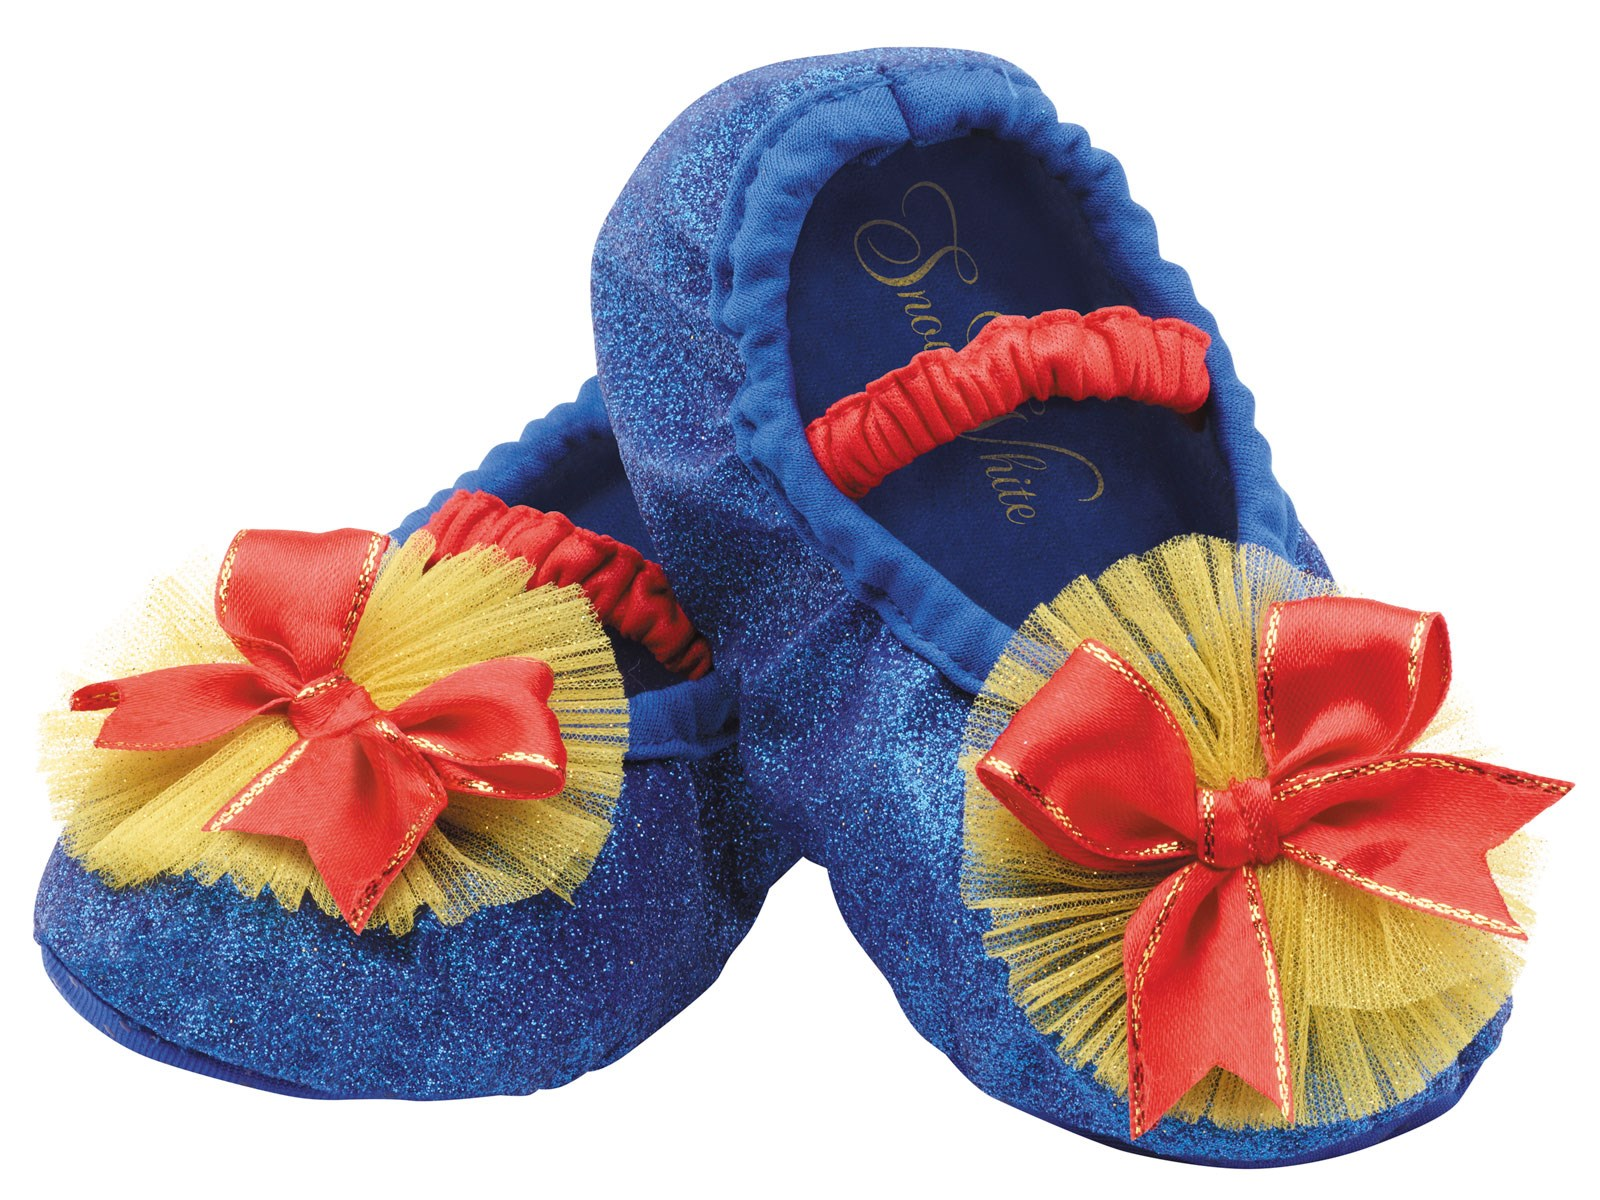 Disney Princess Snow White Slippers For Toddlers